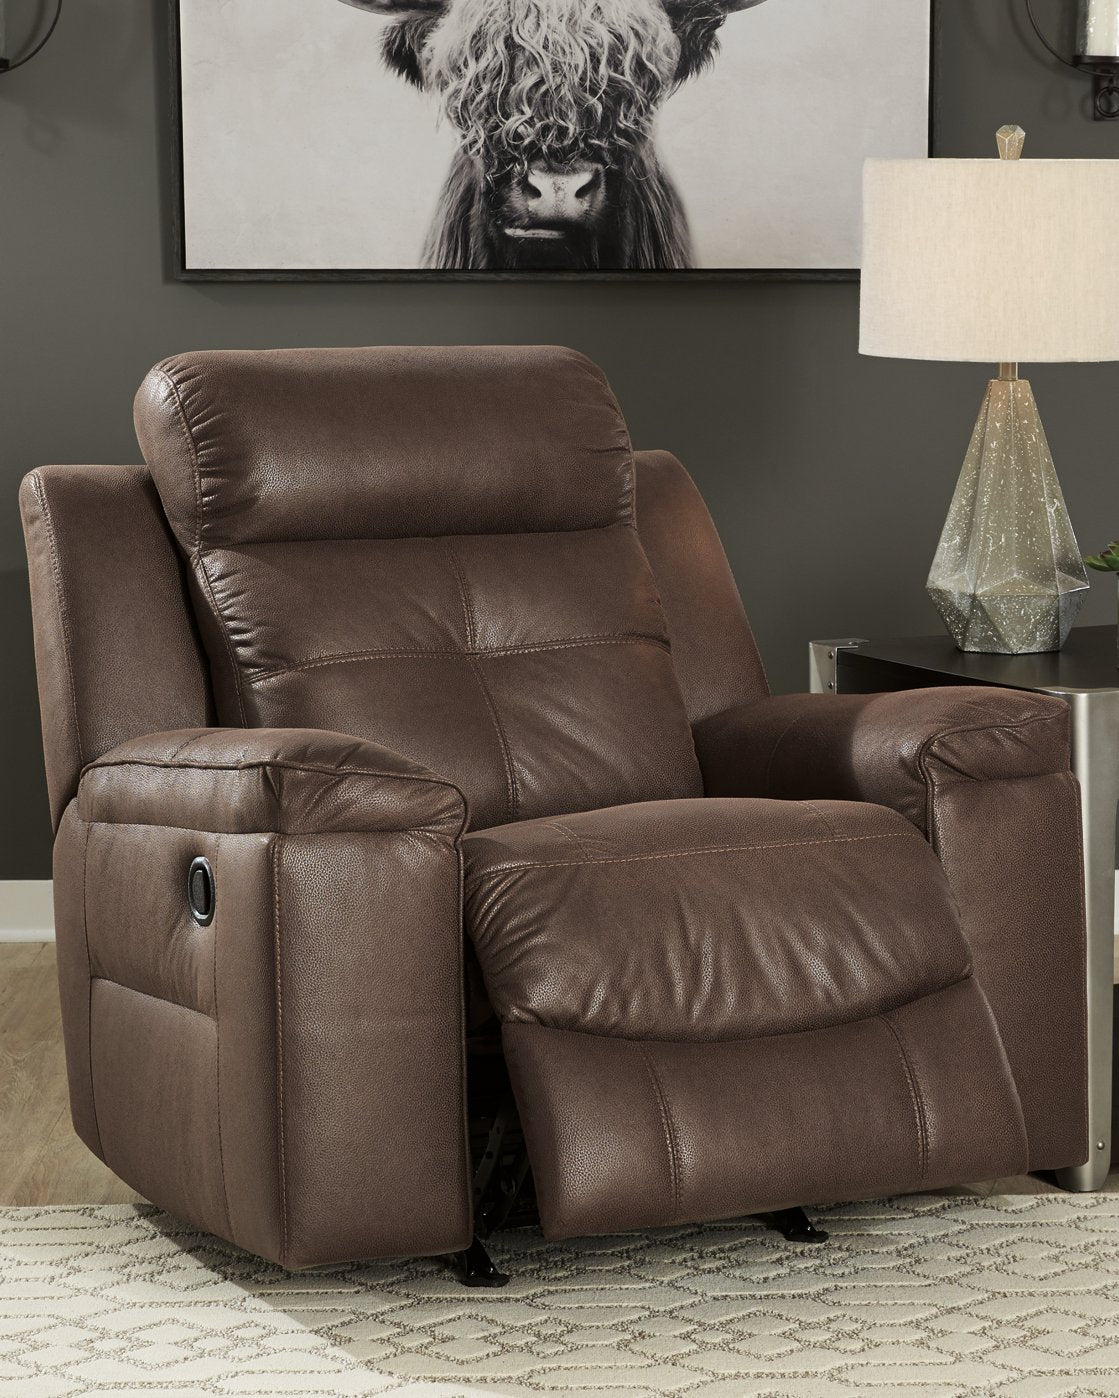 Jesolo Signature Design by Ashley Recliner image